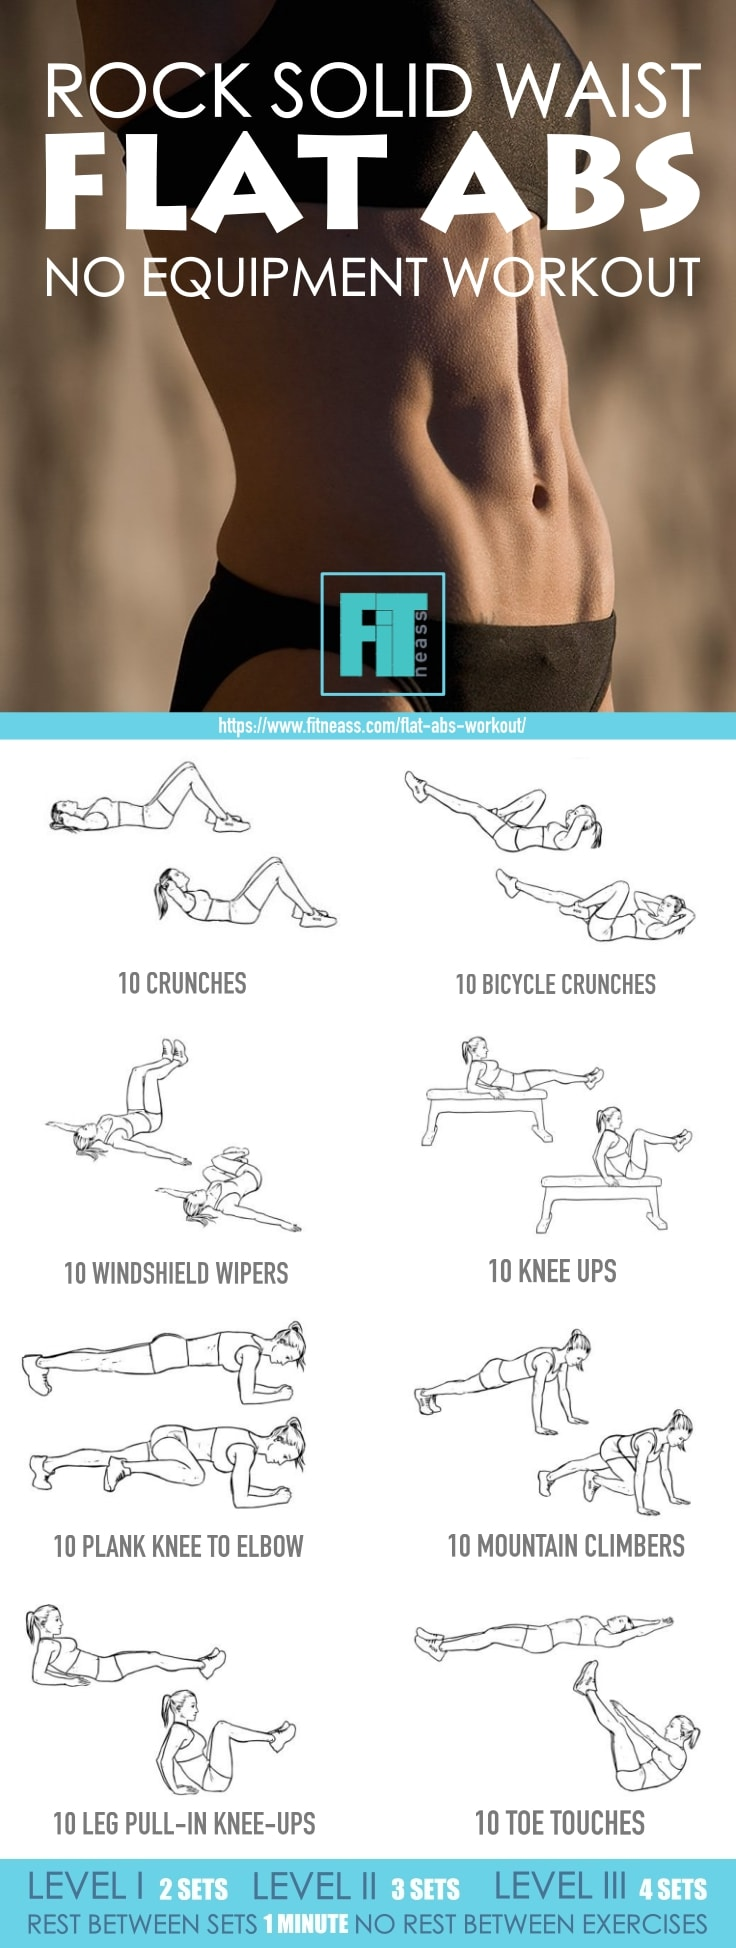 Rock Solid Waist Flat Abs No Equipment Workout